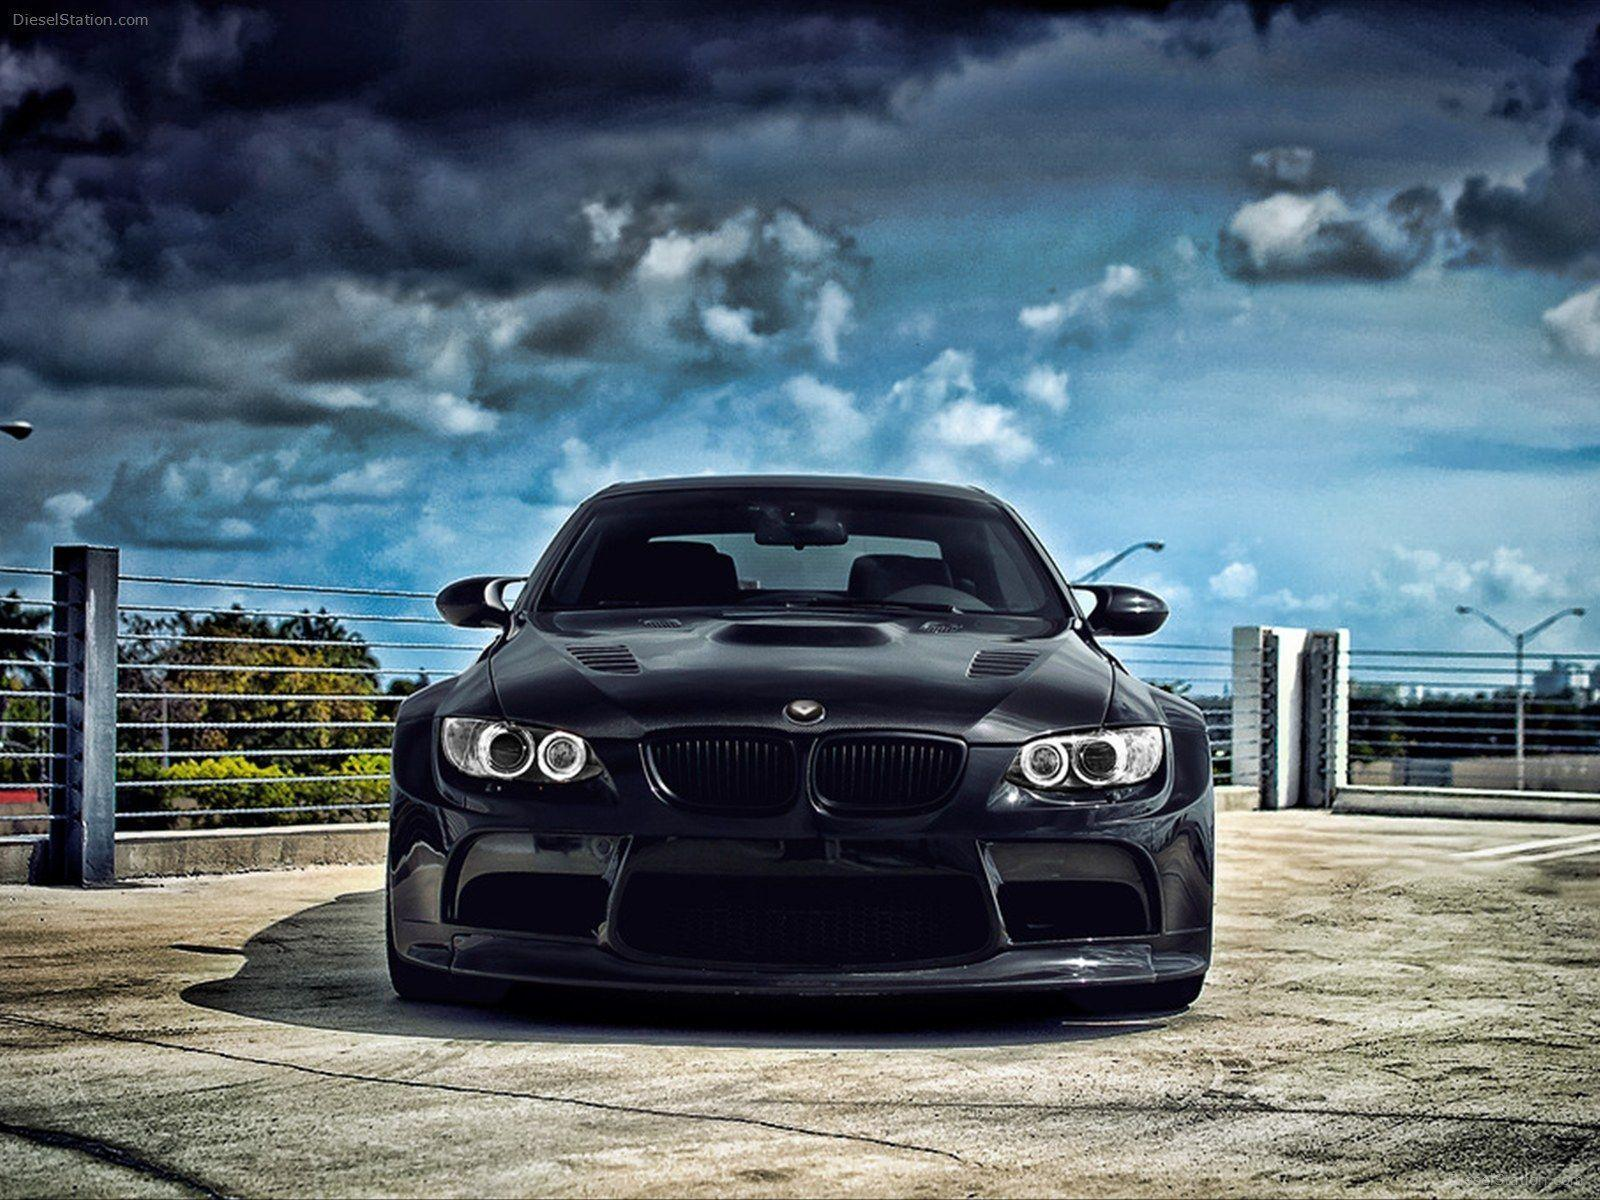 Bmw M3 Wallpaper - WallpaperSafari